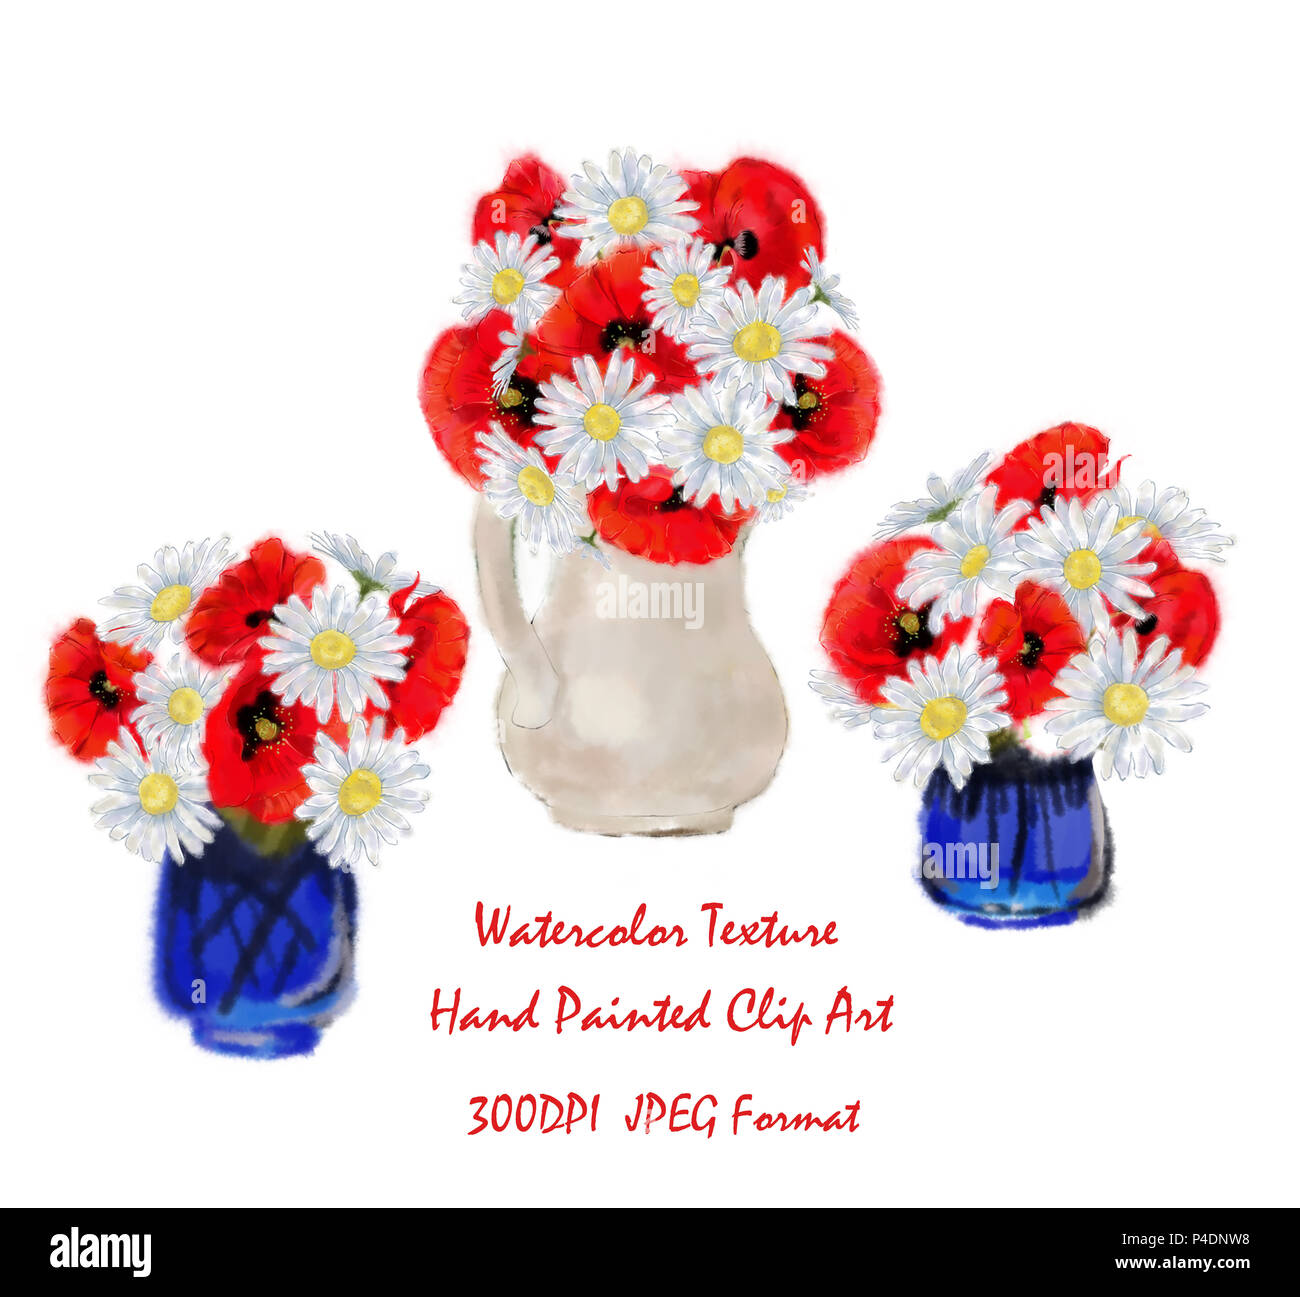 Set of Three Flower Arrangements Isolated on White Background. Tricolor Daisy and Poppy Bouquets in Blue and White Vases for Clip Art, Cards, posters. - Stock Image